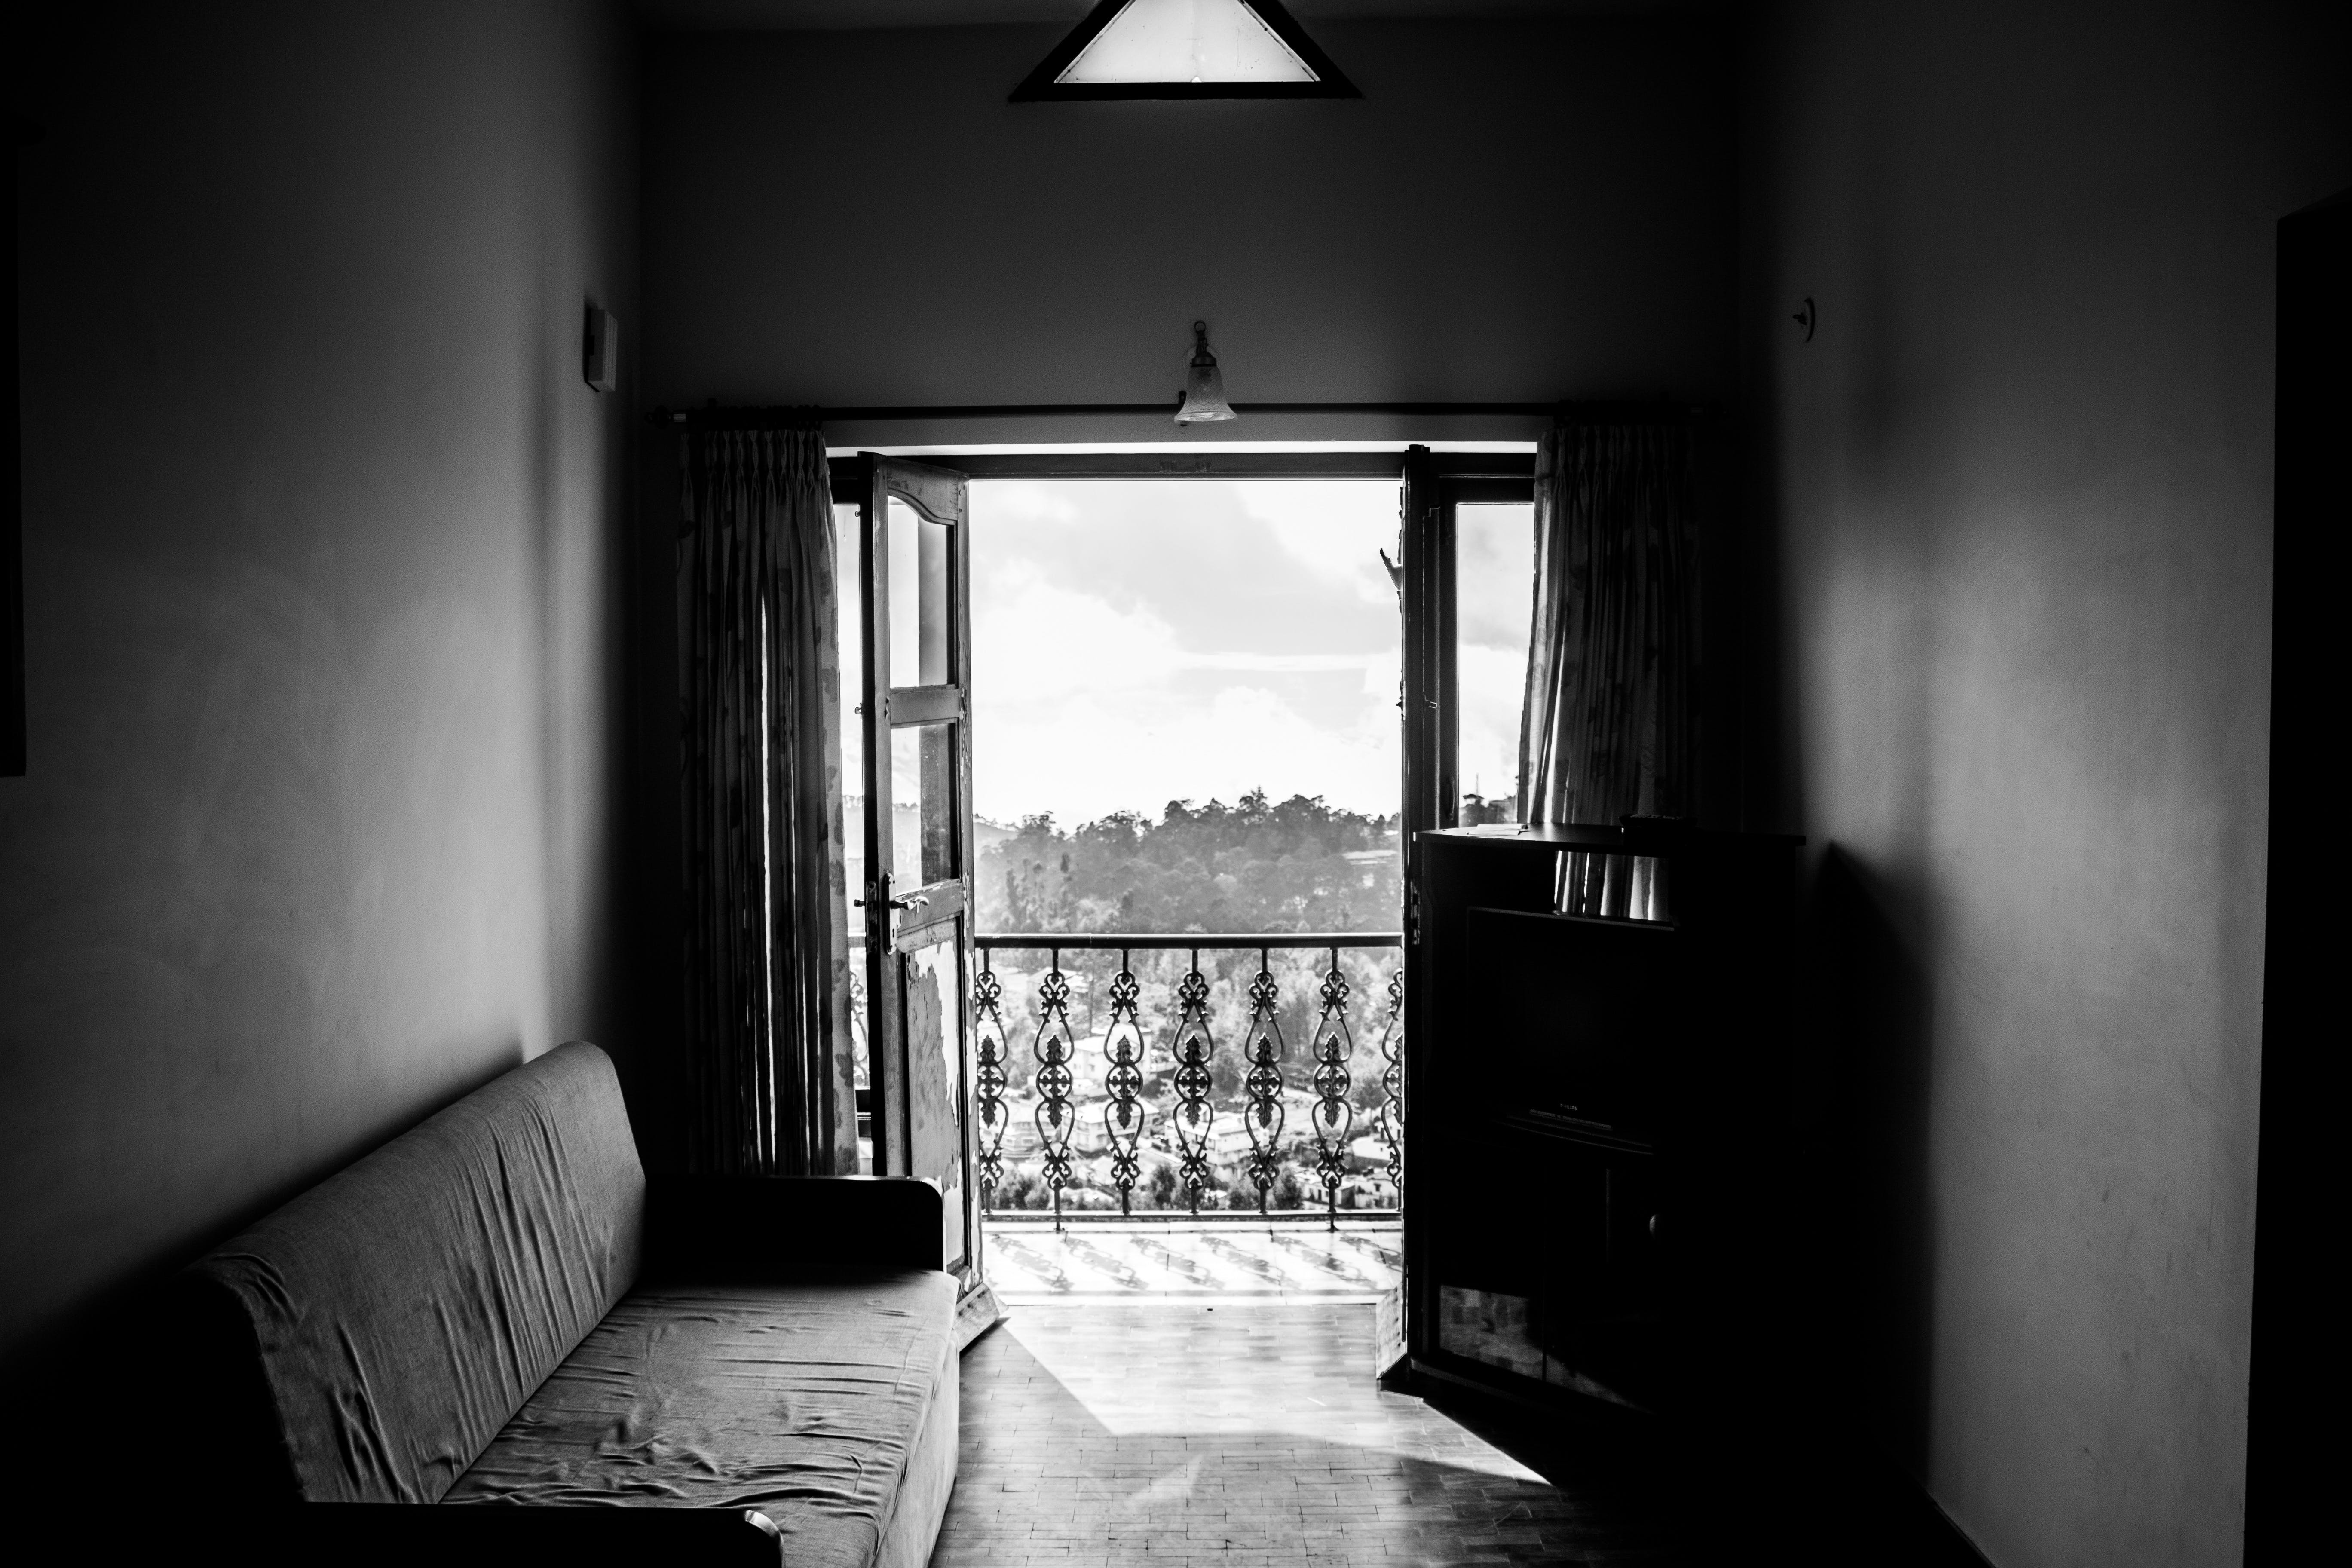 Black and White Photo of Balcony